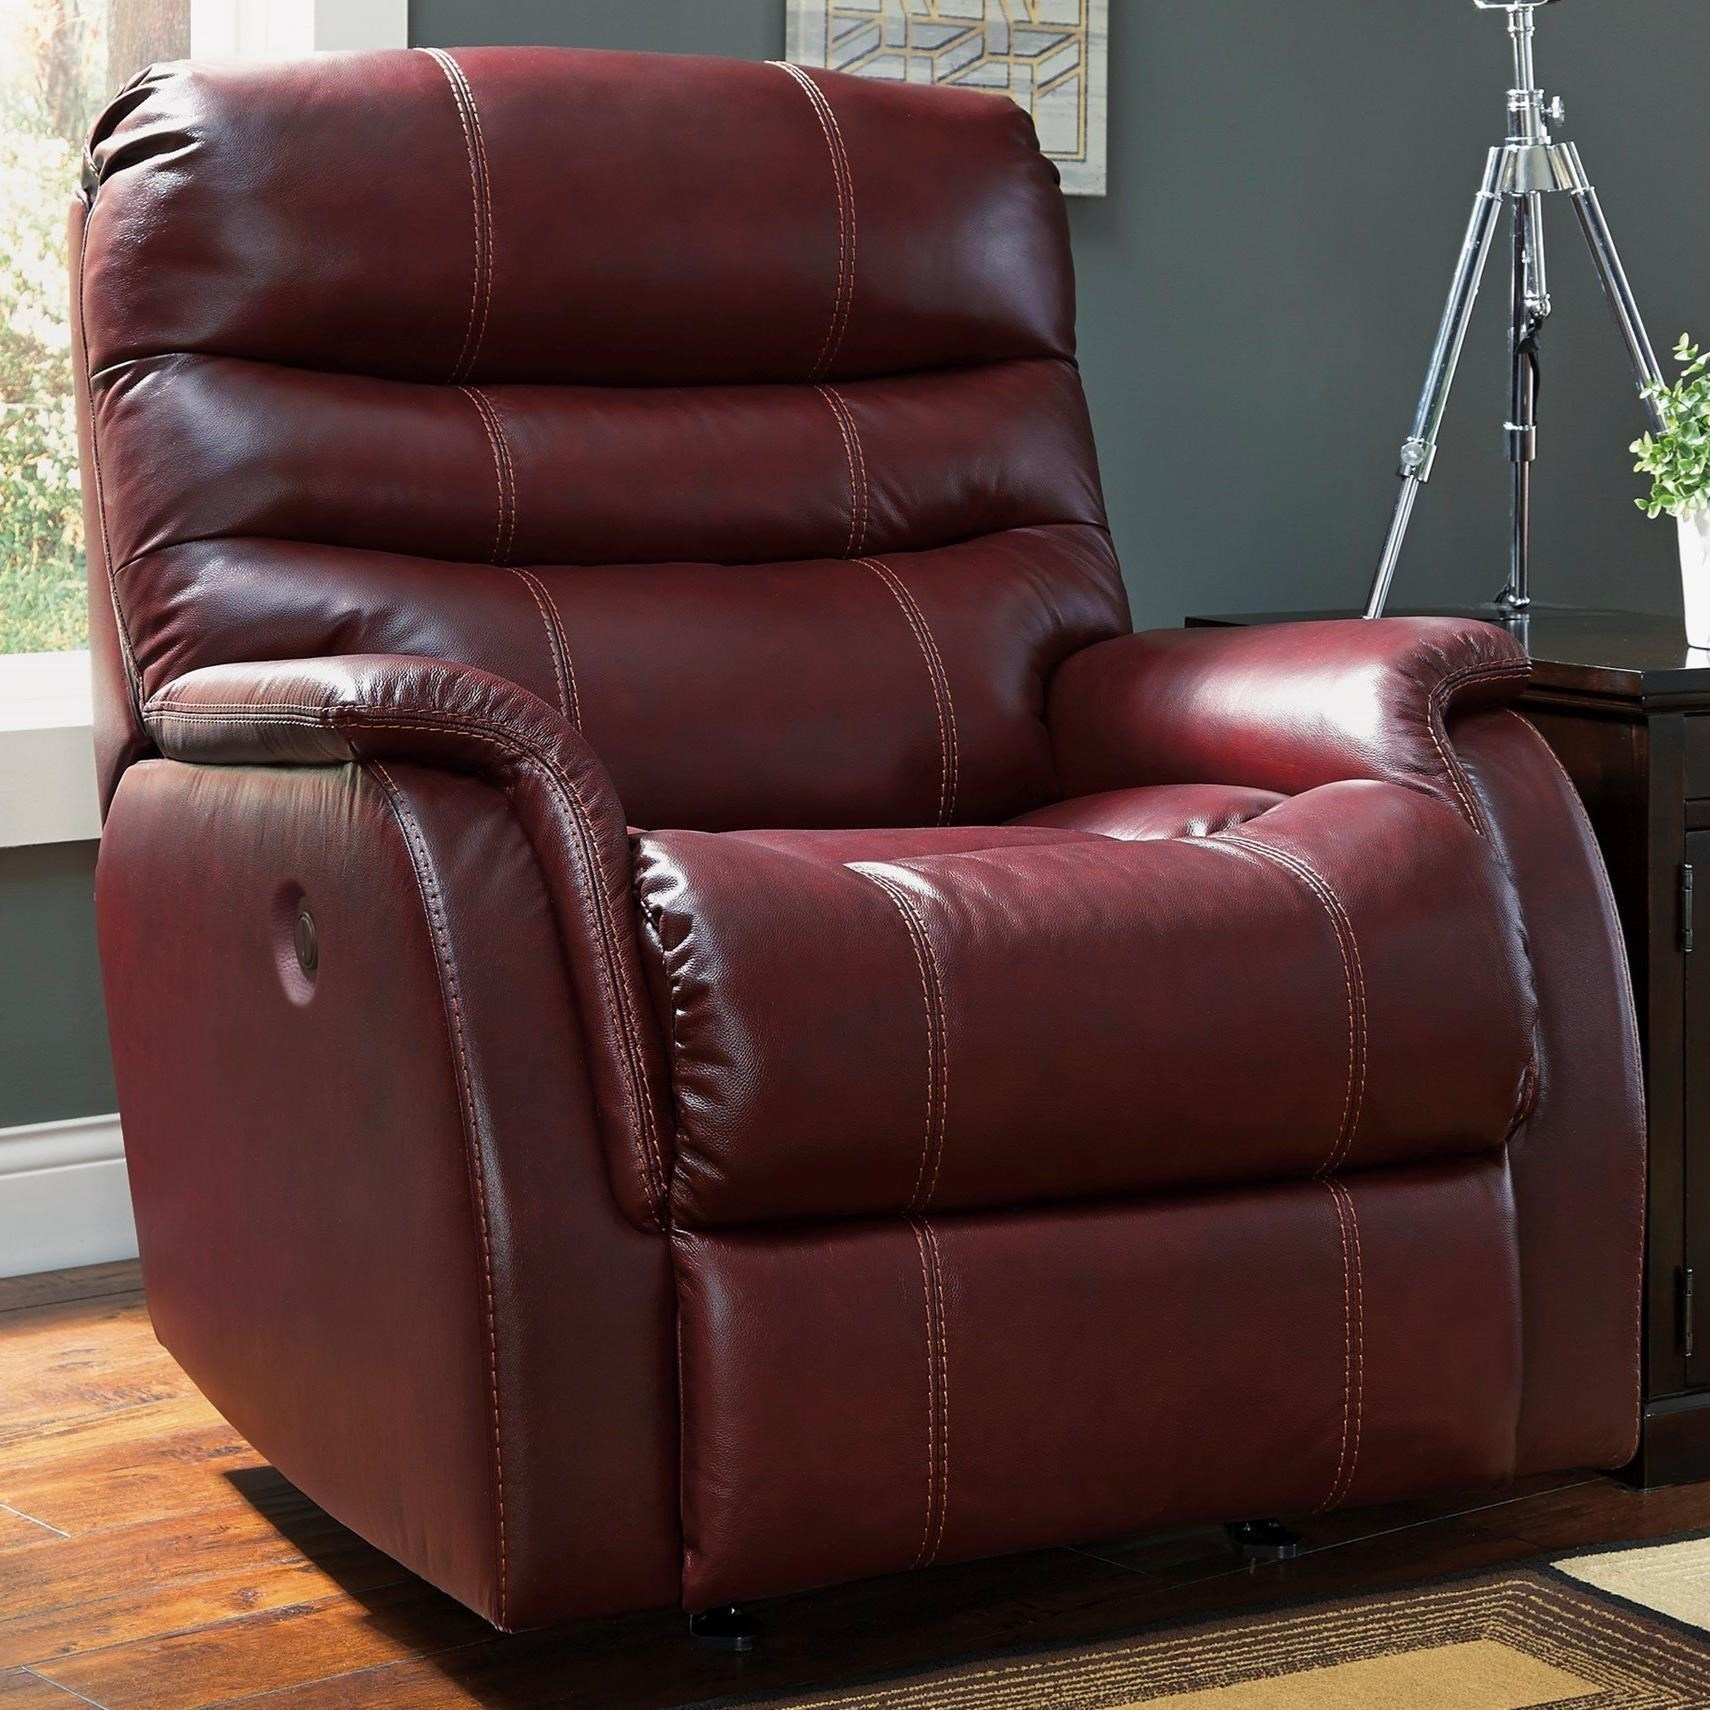 Signature Design by Ashley Bridger Contemporary Leather Match Power Rocker Recliner & Signature Design by Ashley Bridger Contemporary Leather Match ... islam-shia.org